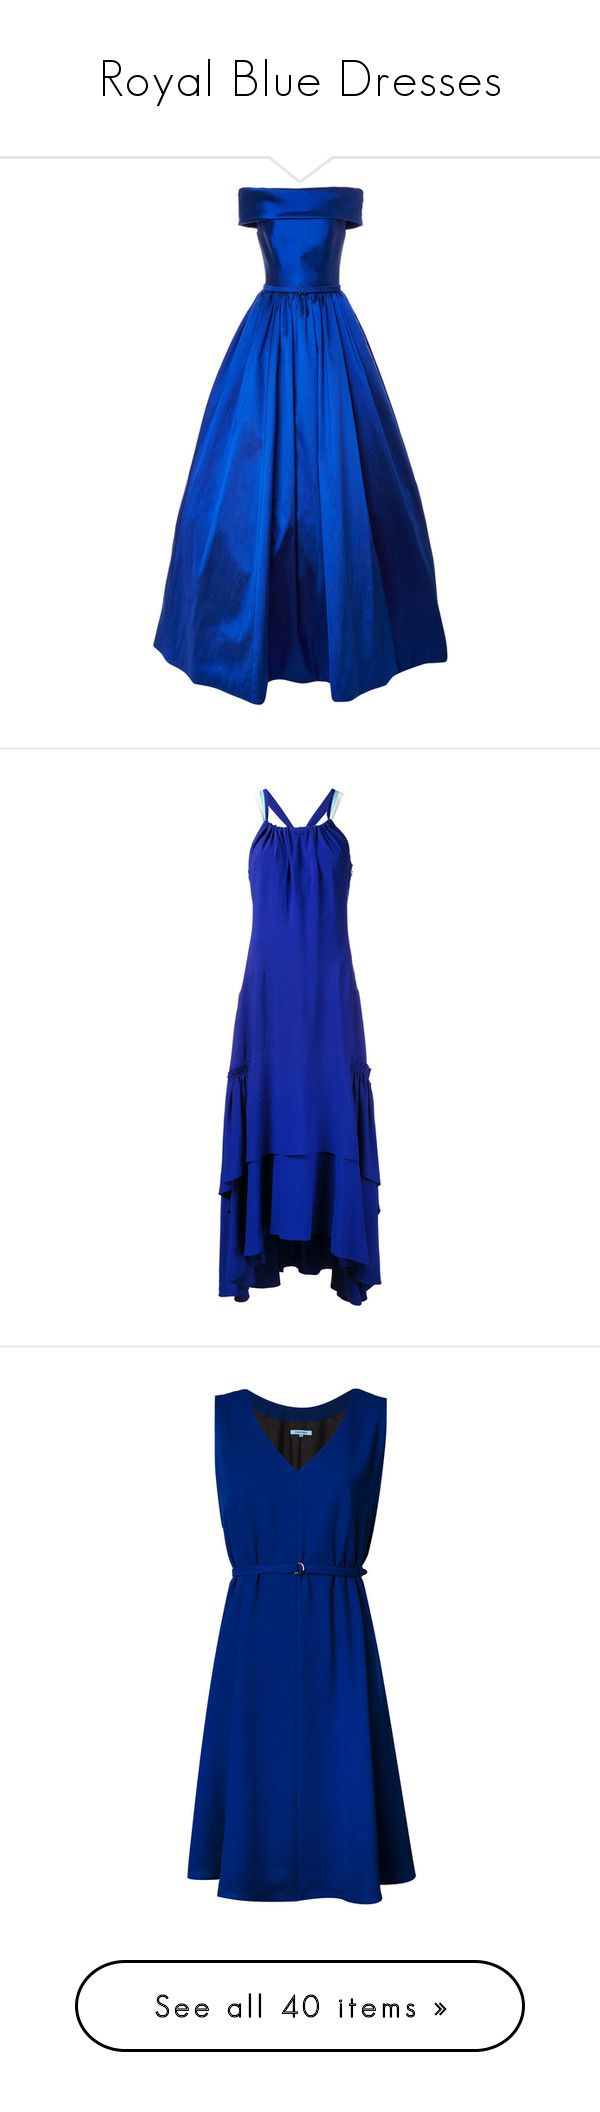 """Royal Blue Dresses"" by tegan-b-riley on Polyvore featuring dresses, gowns, long dresses, vestidos, royal blue long dress, royal blue dress, blue evening dresses, royal blue evening gown, halter top maxi dress and hi low dress"